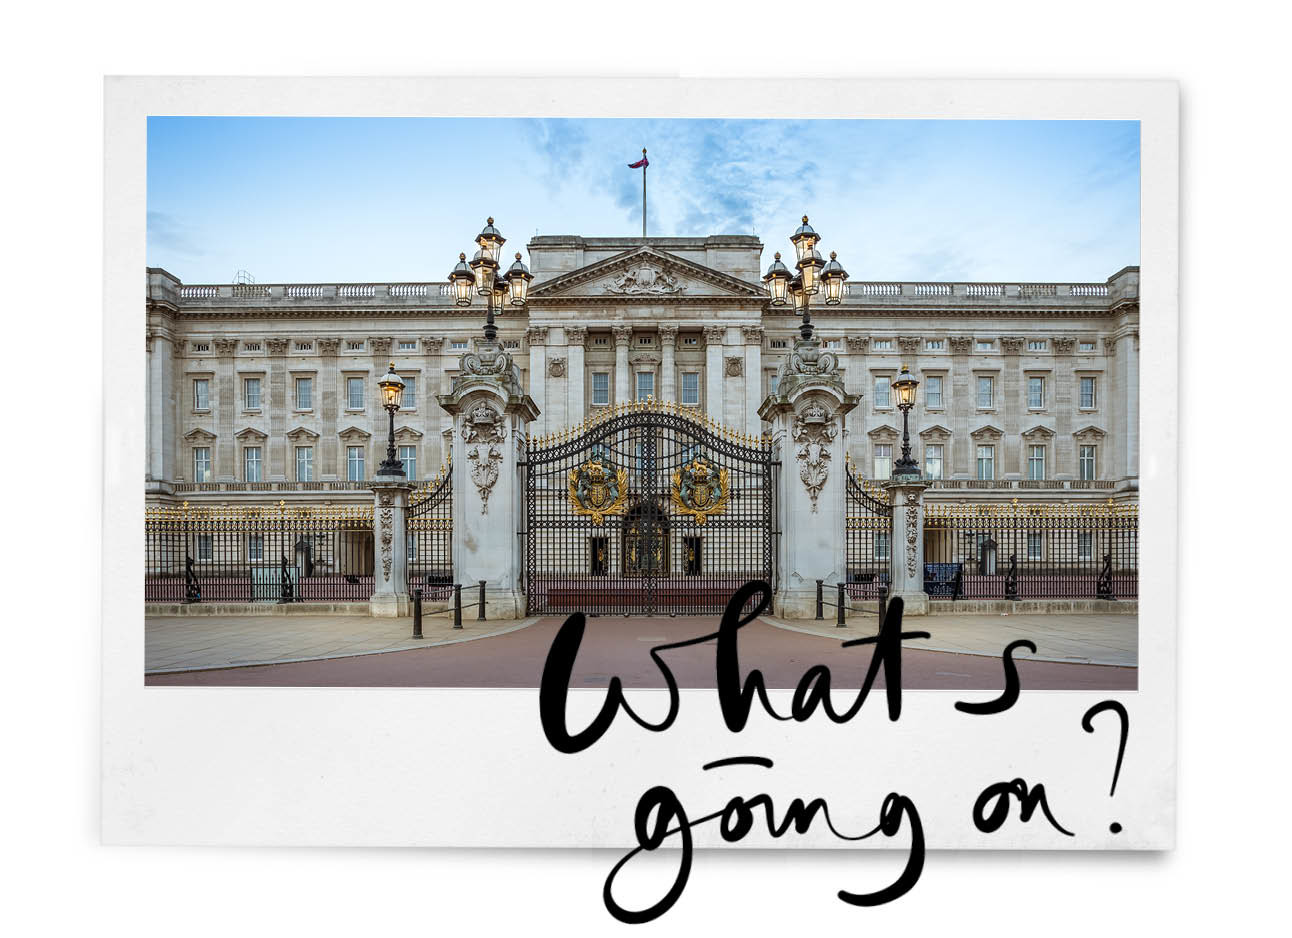 buckingham palace, engeland, queen elizabeth